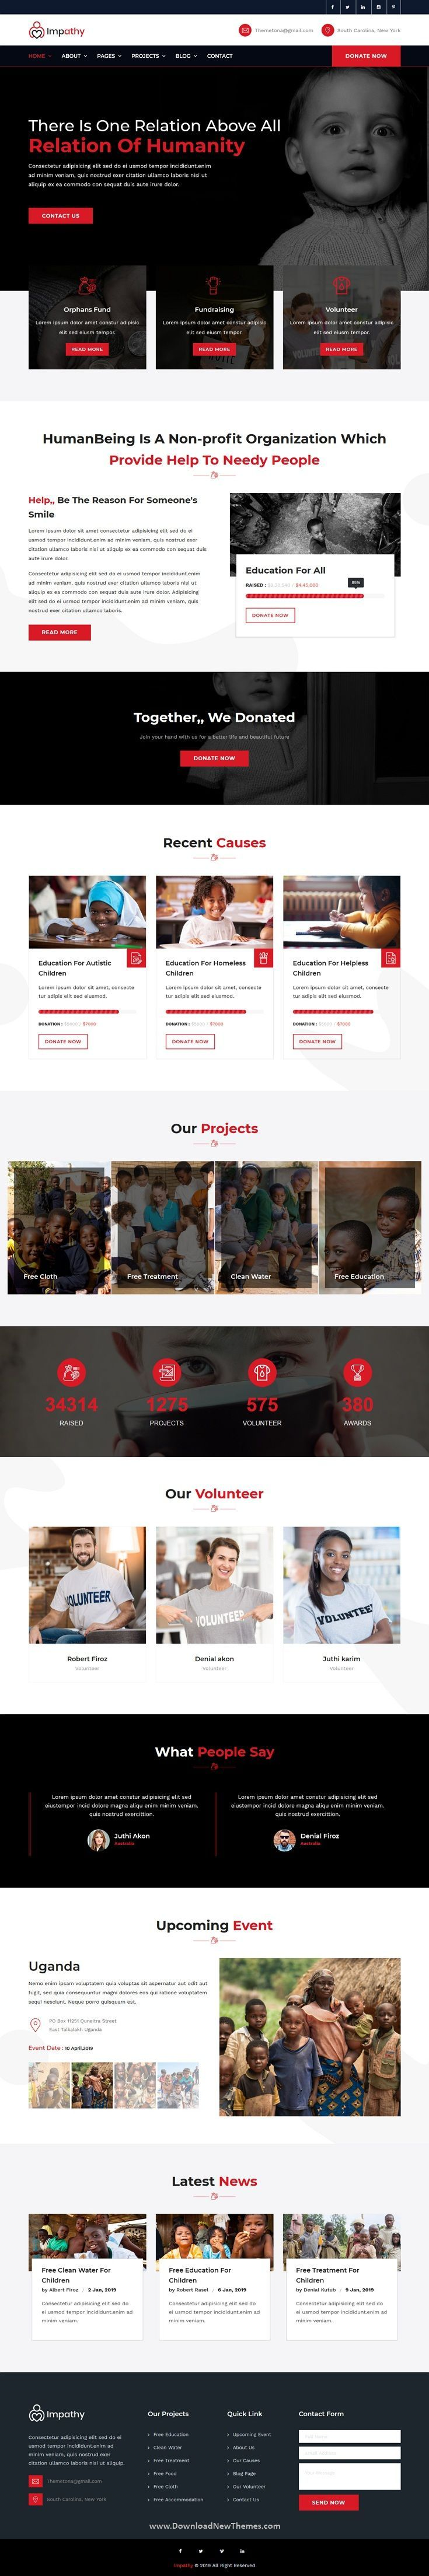 Pin By Muriel Quan On Charity Organizations Web Template Design Html5 Templates Web Design Inspiration